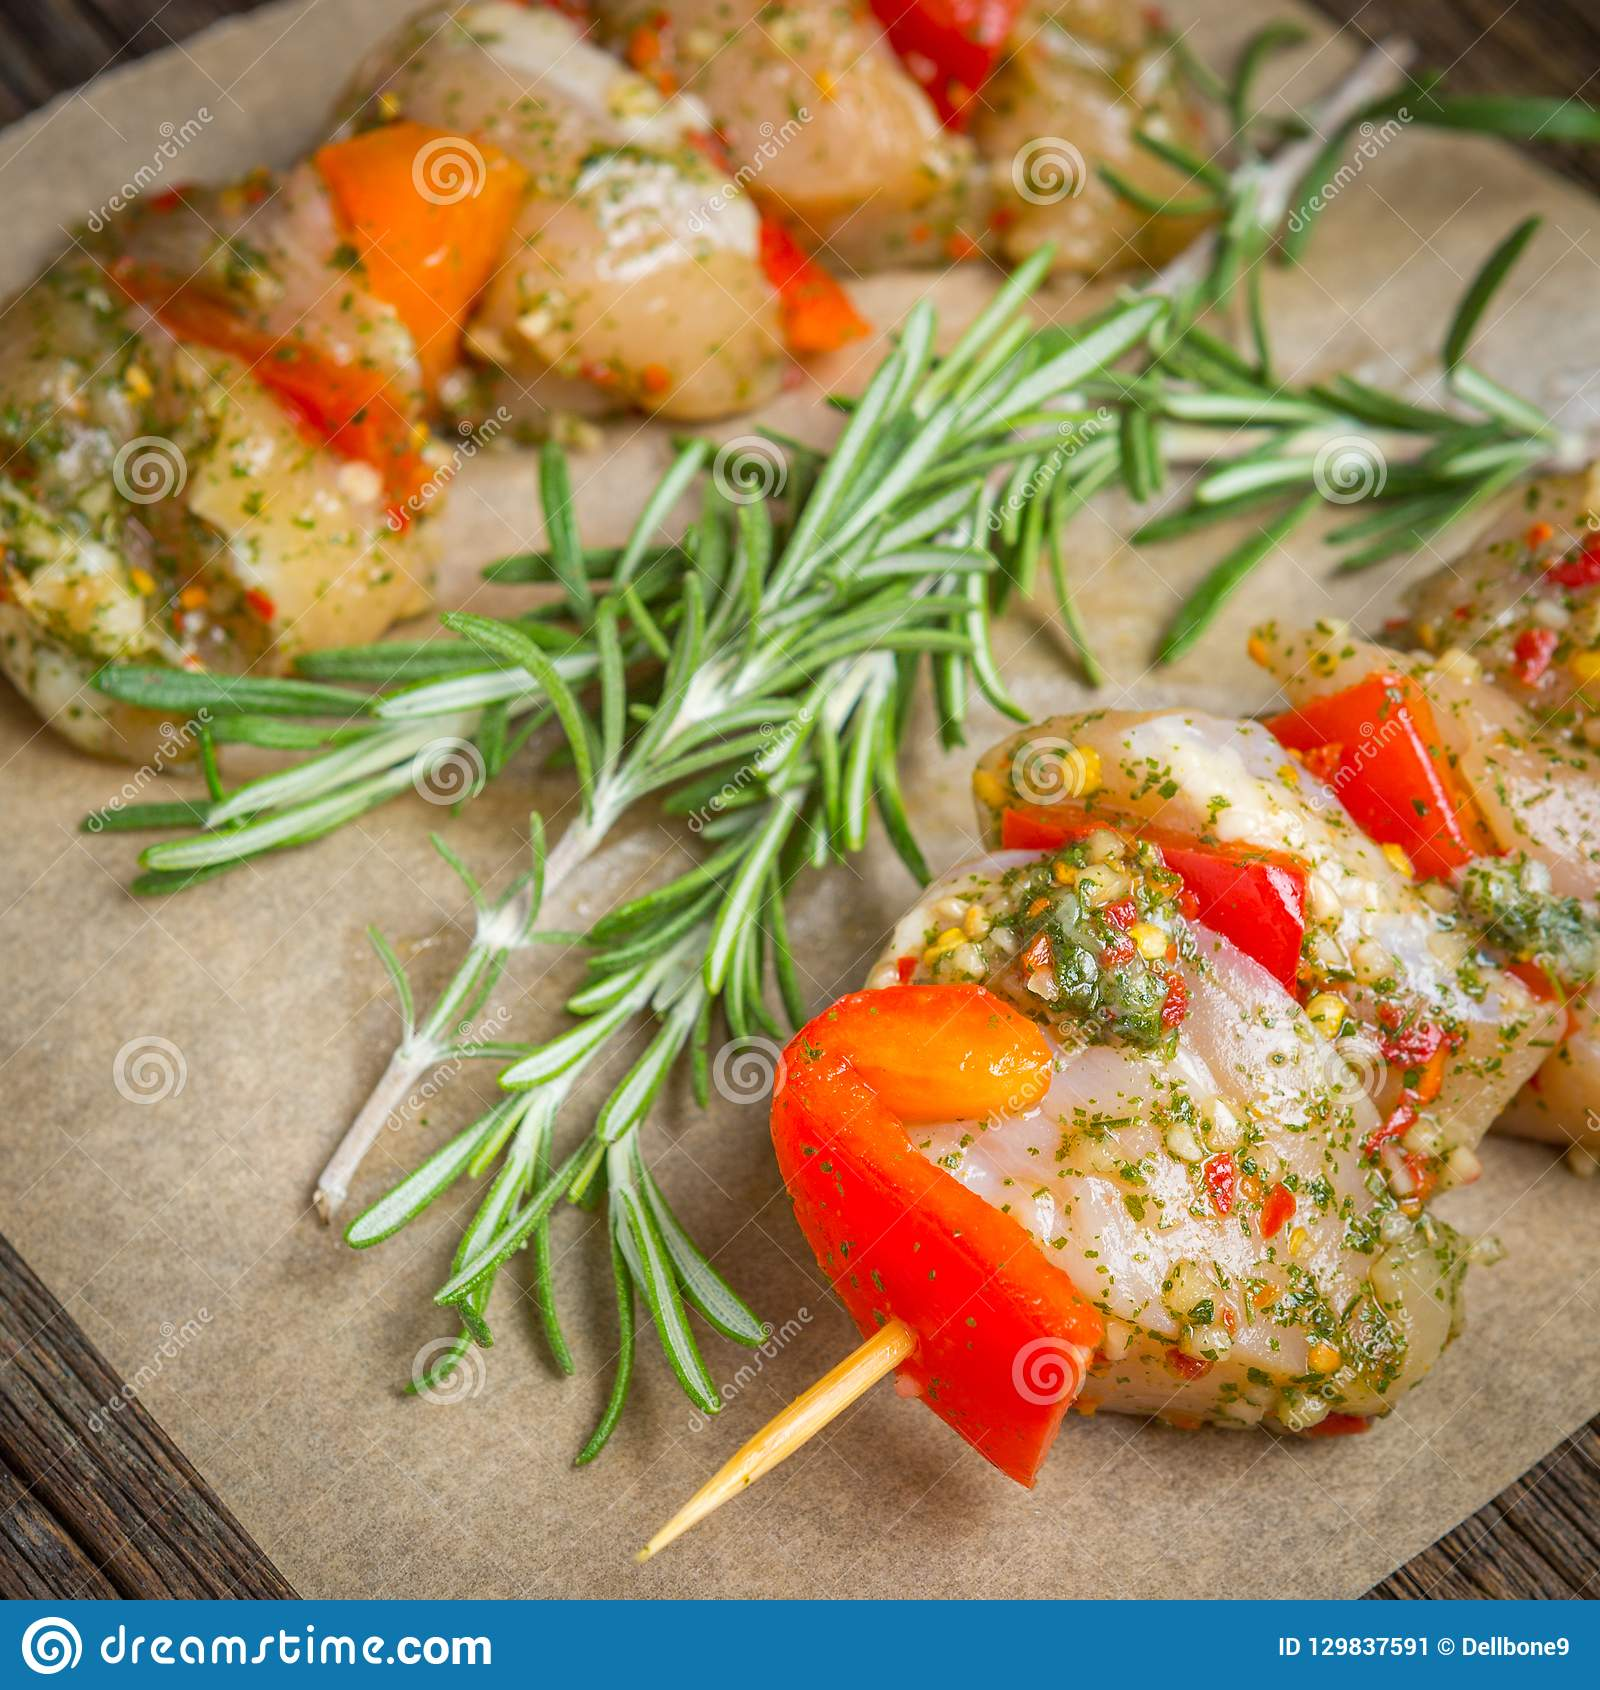 Making kebabs from chicken - raw meat on skewers